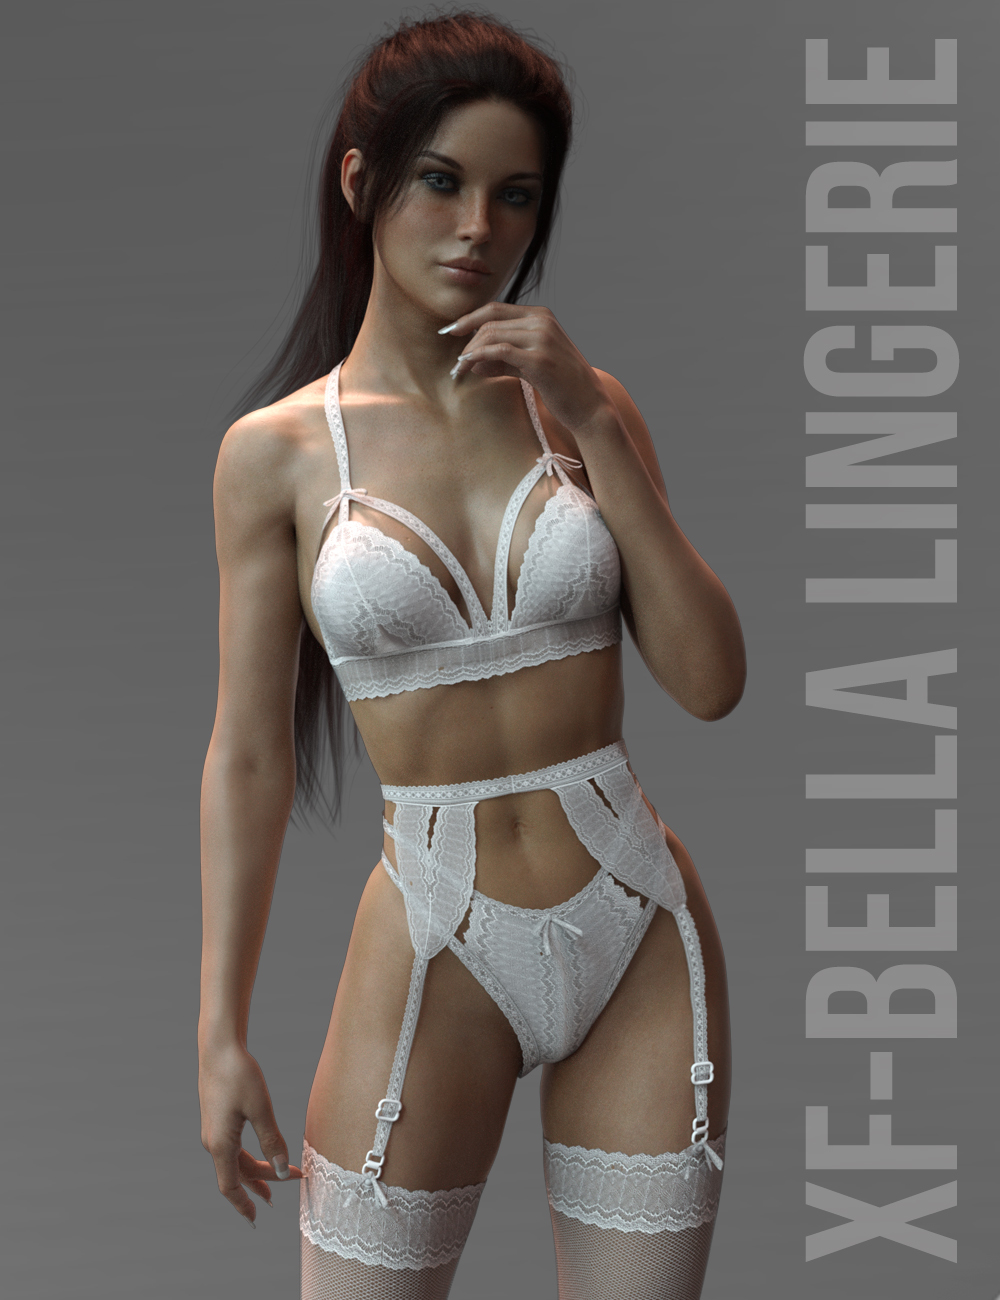 X-Fashion Bella Lingerie Genesis 8 Females by xtrart-3d